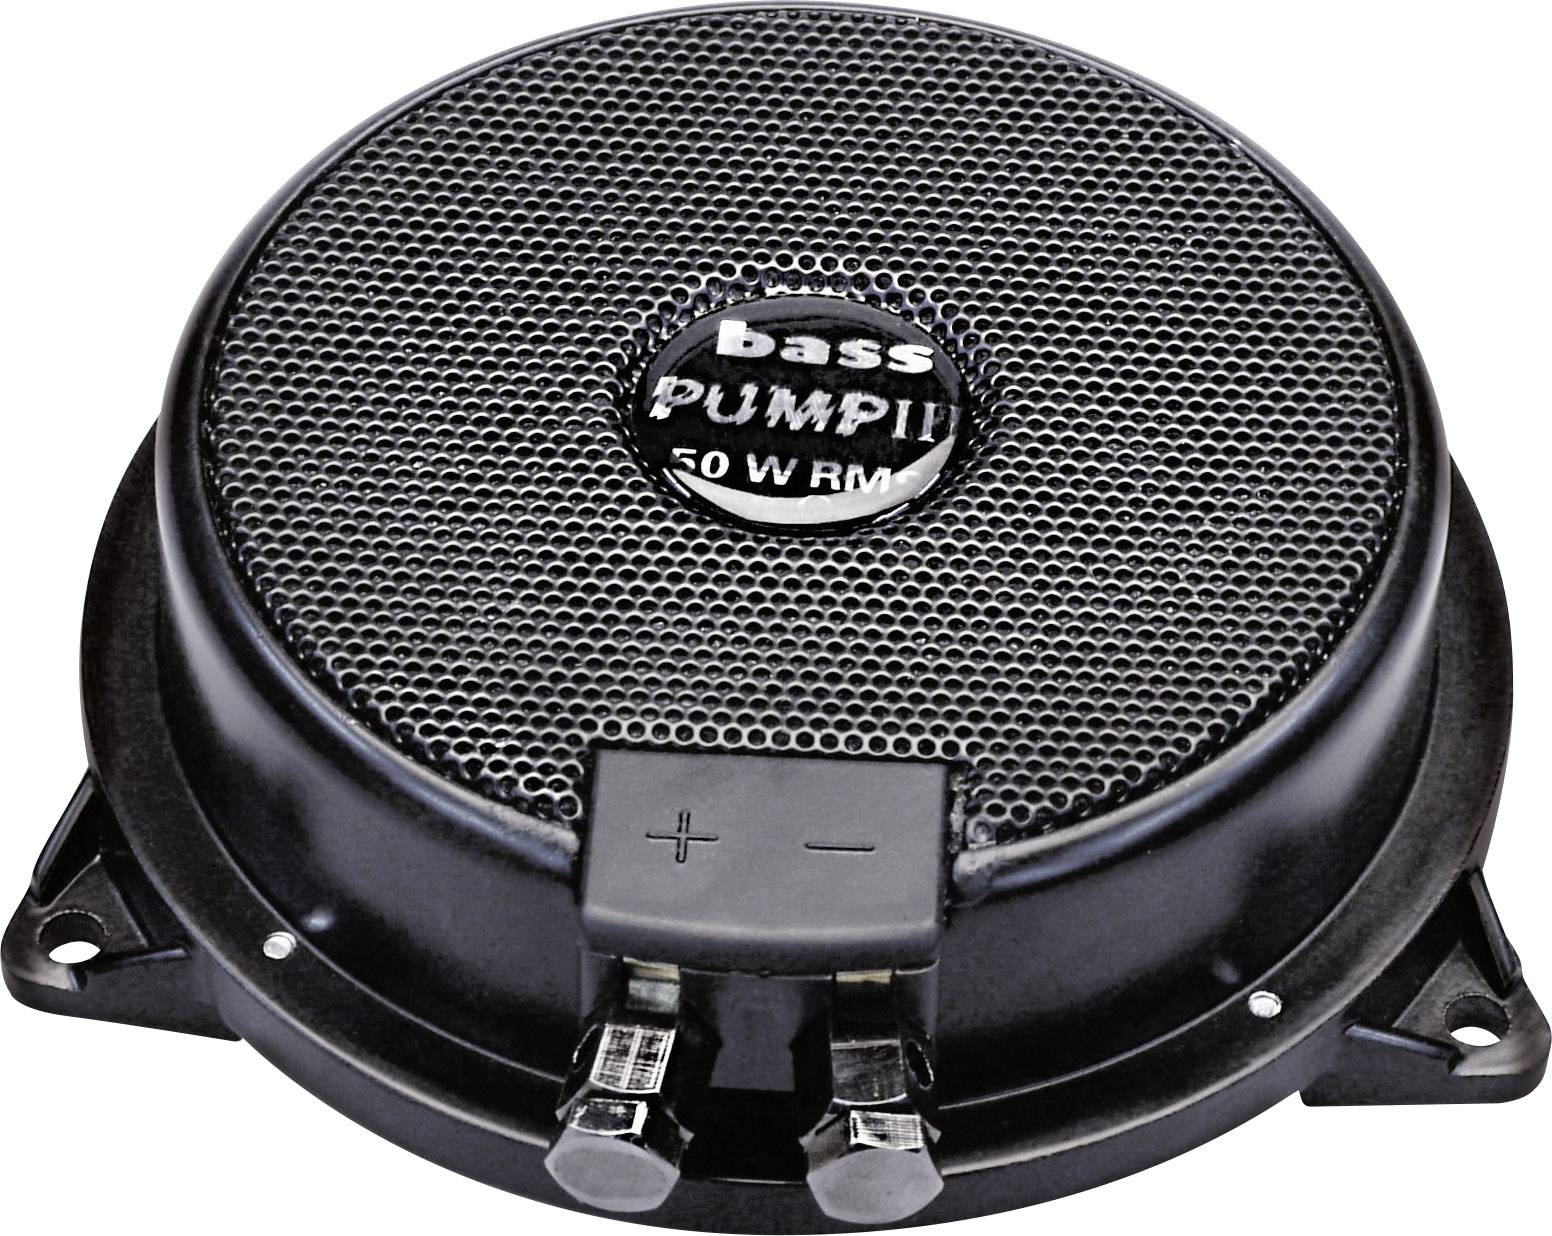 Pasivní subwoofer do auta Sinuslive Bass-Pump III, 130 mm, 8 Ohm, 80 W